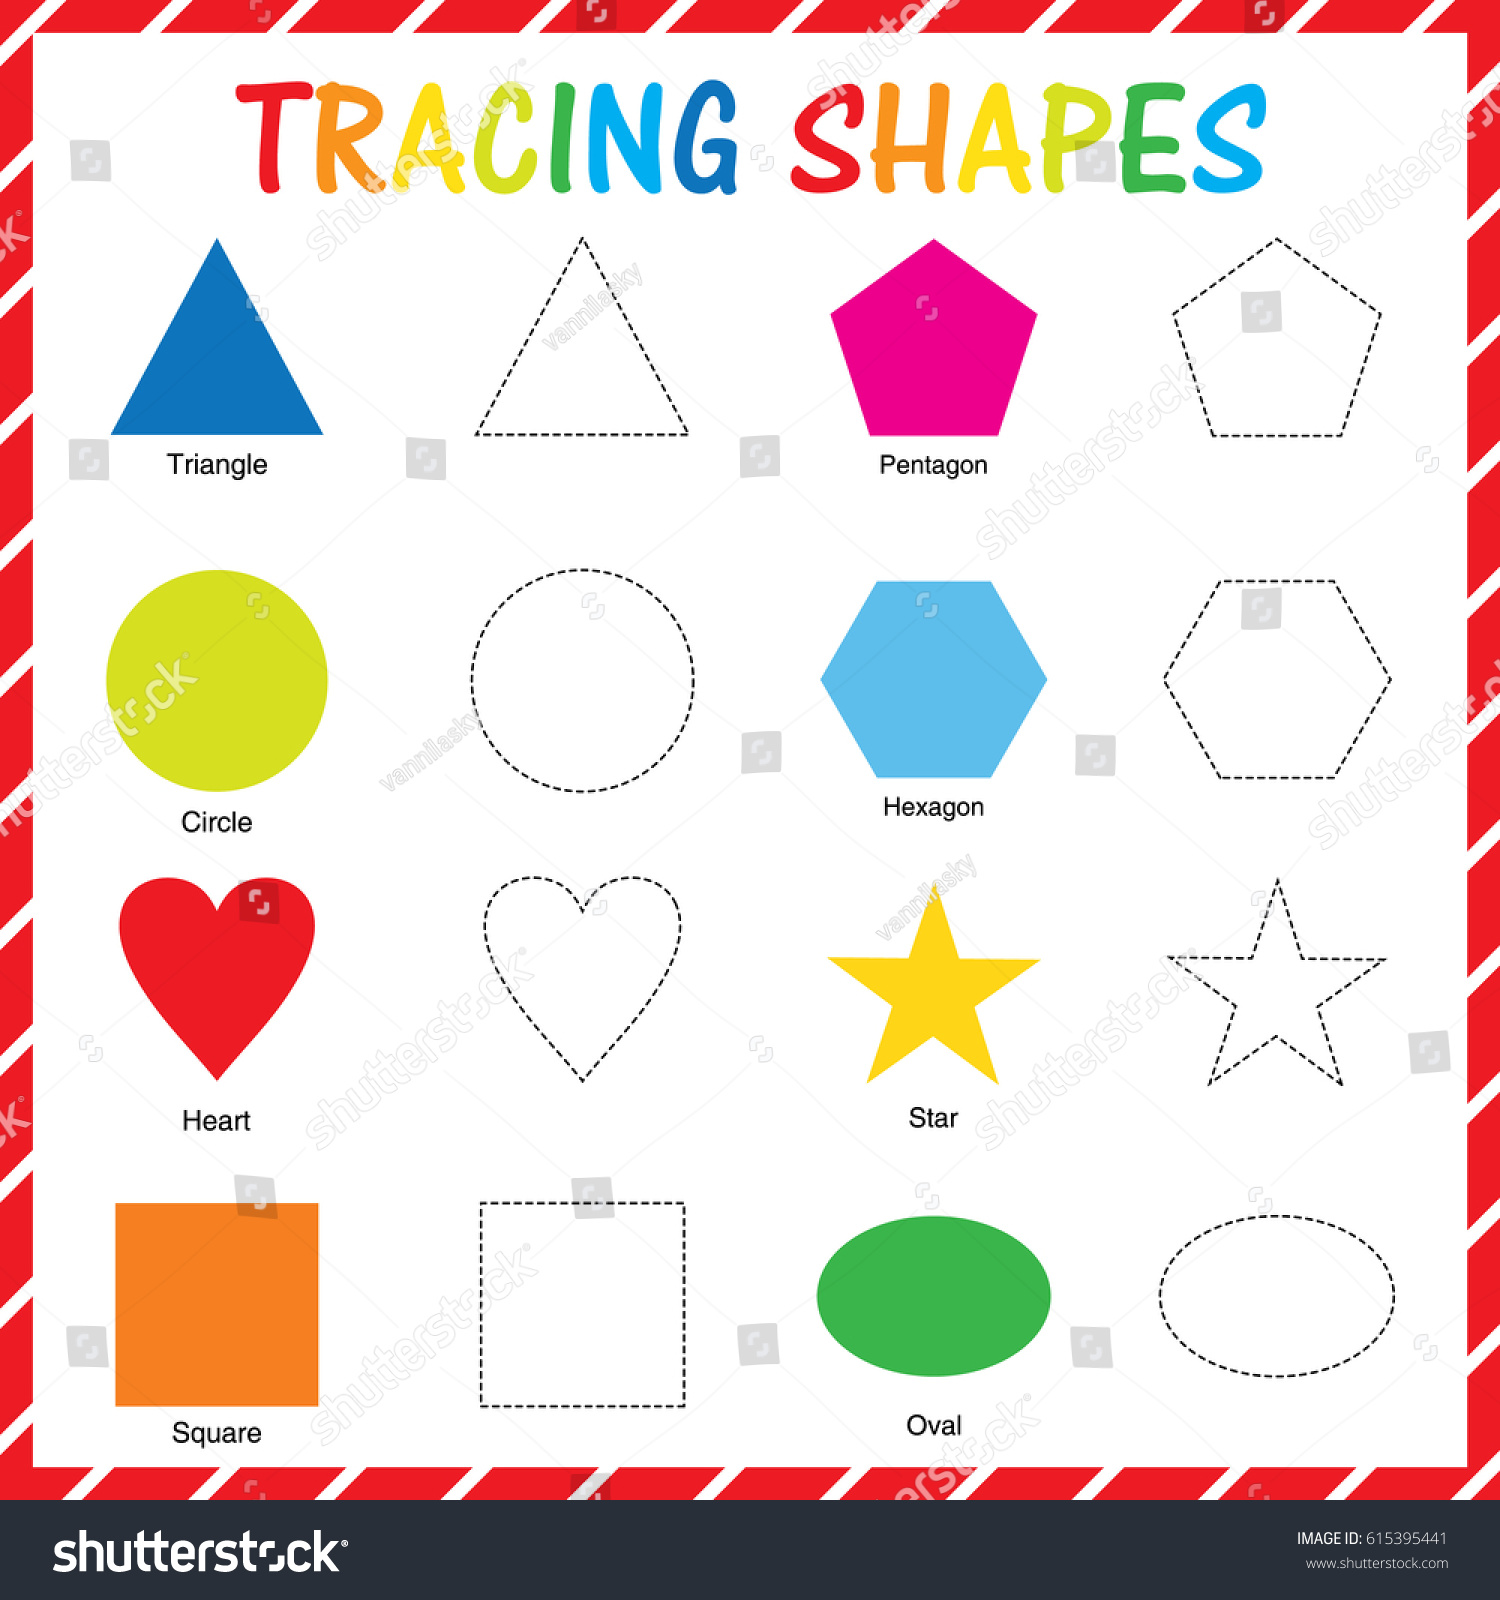 Tracing Shape Stock Vector